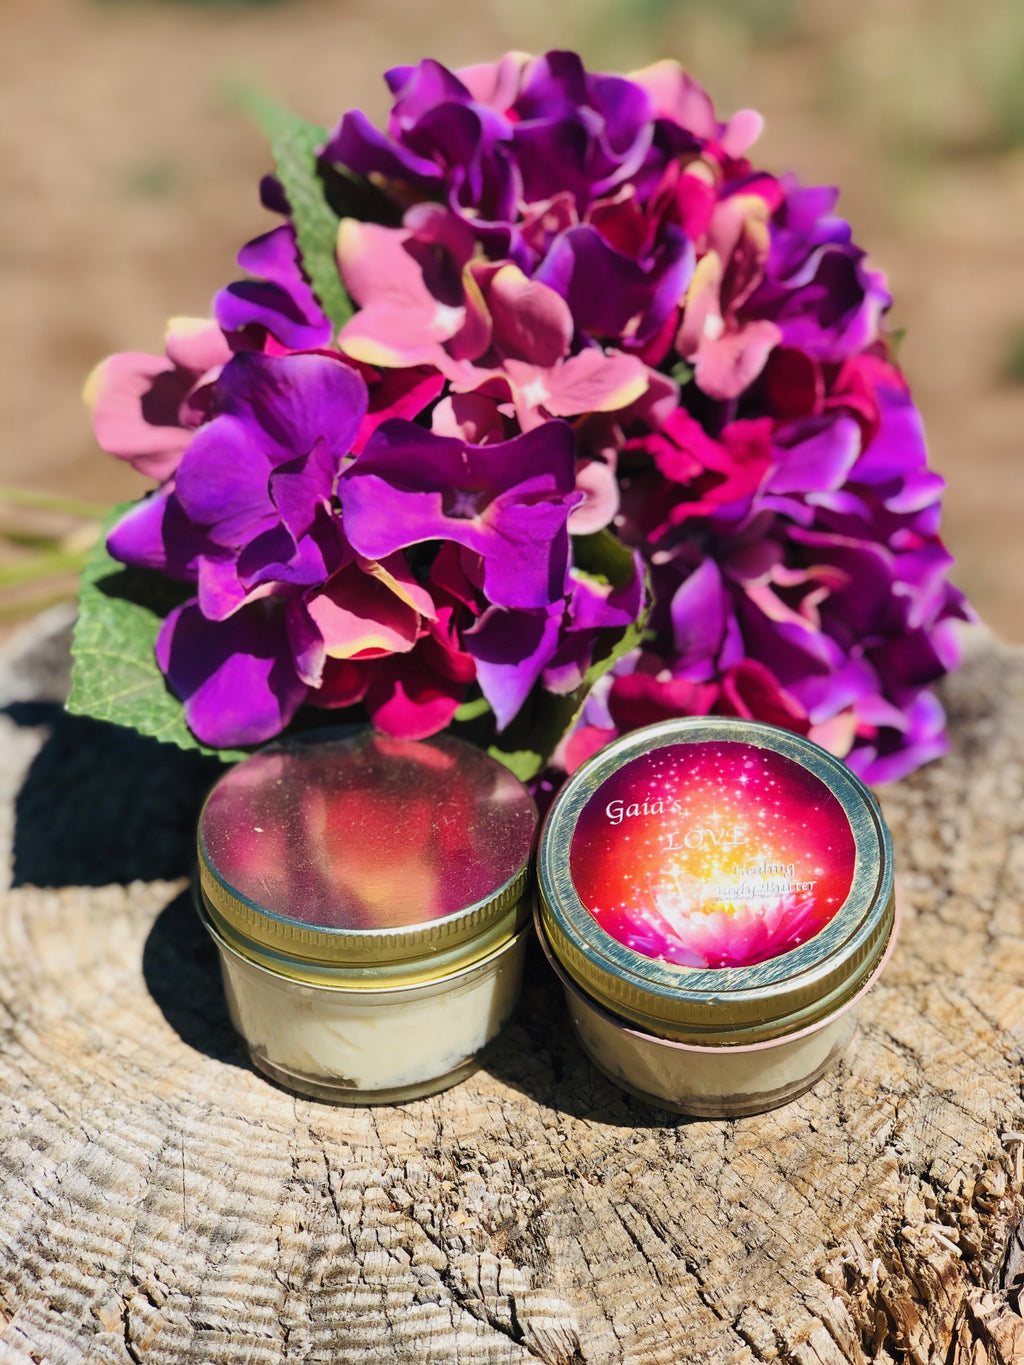 Gaia's Body Butter - Gaia's Whole Healing Essentials